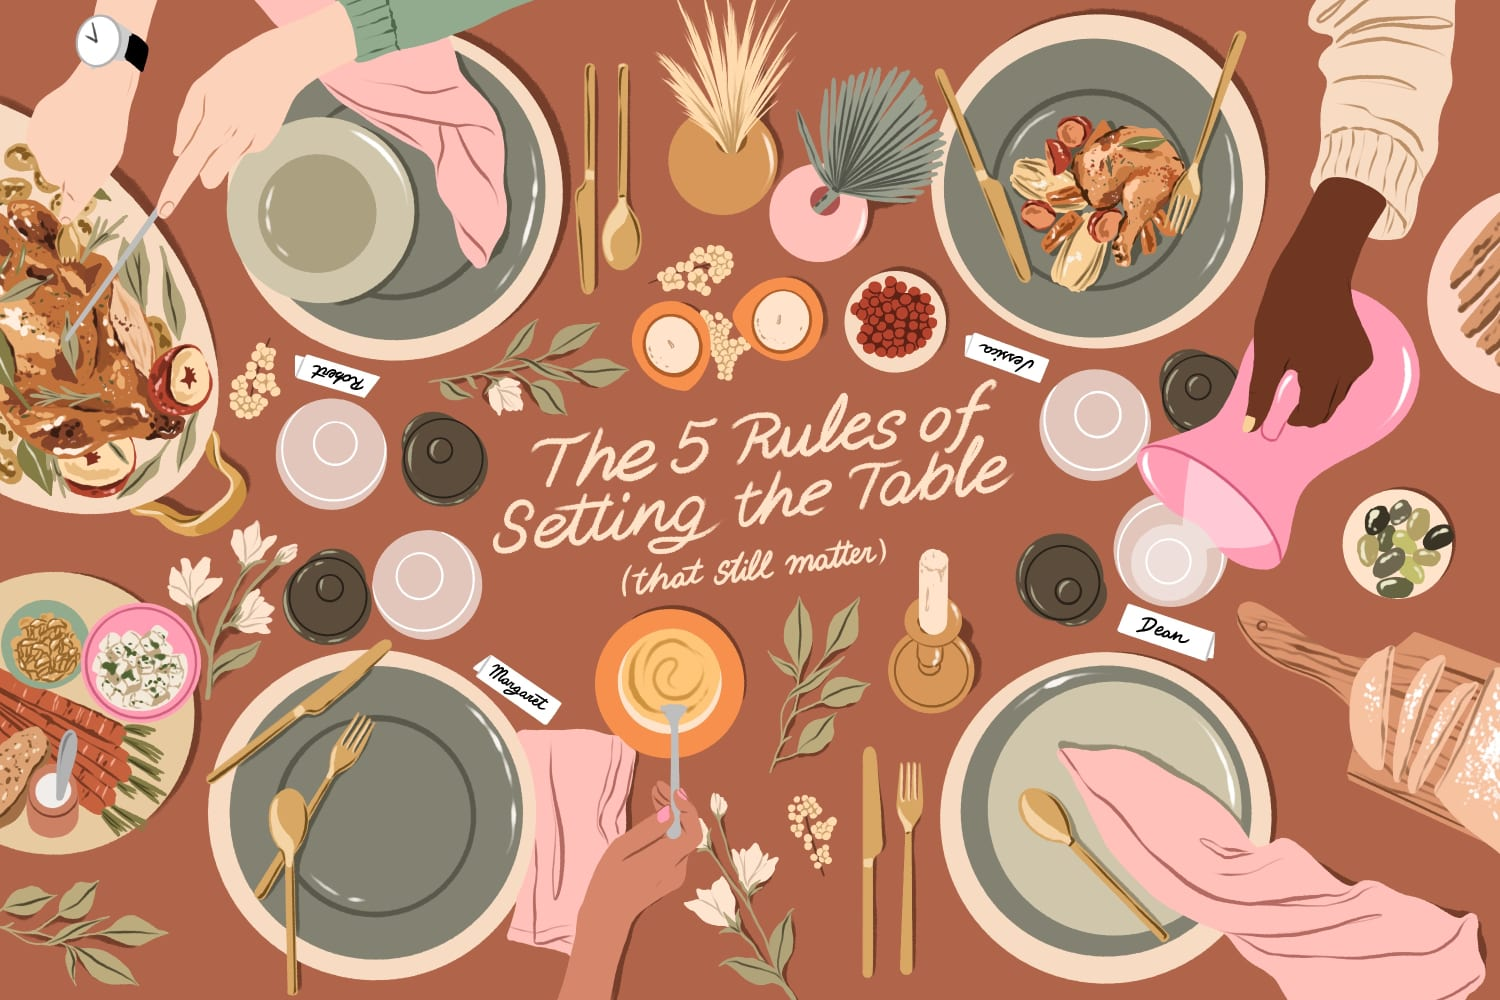 The 5 Rules That Still Really Matter When It Comes to Setting the Table